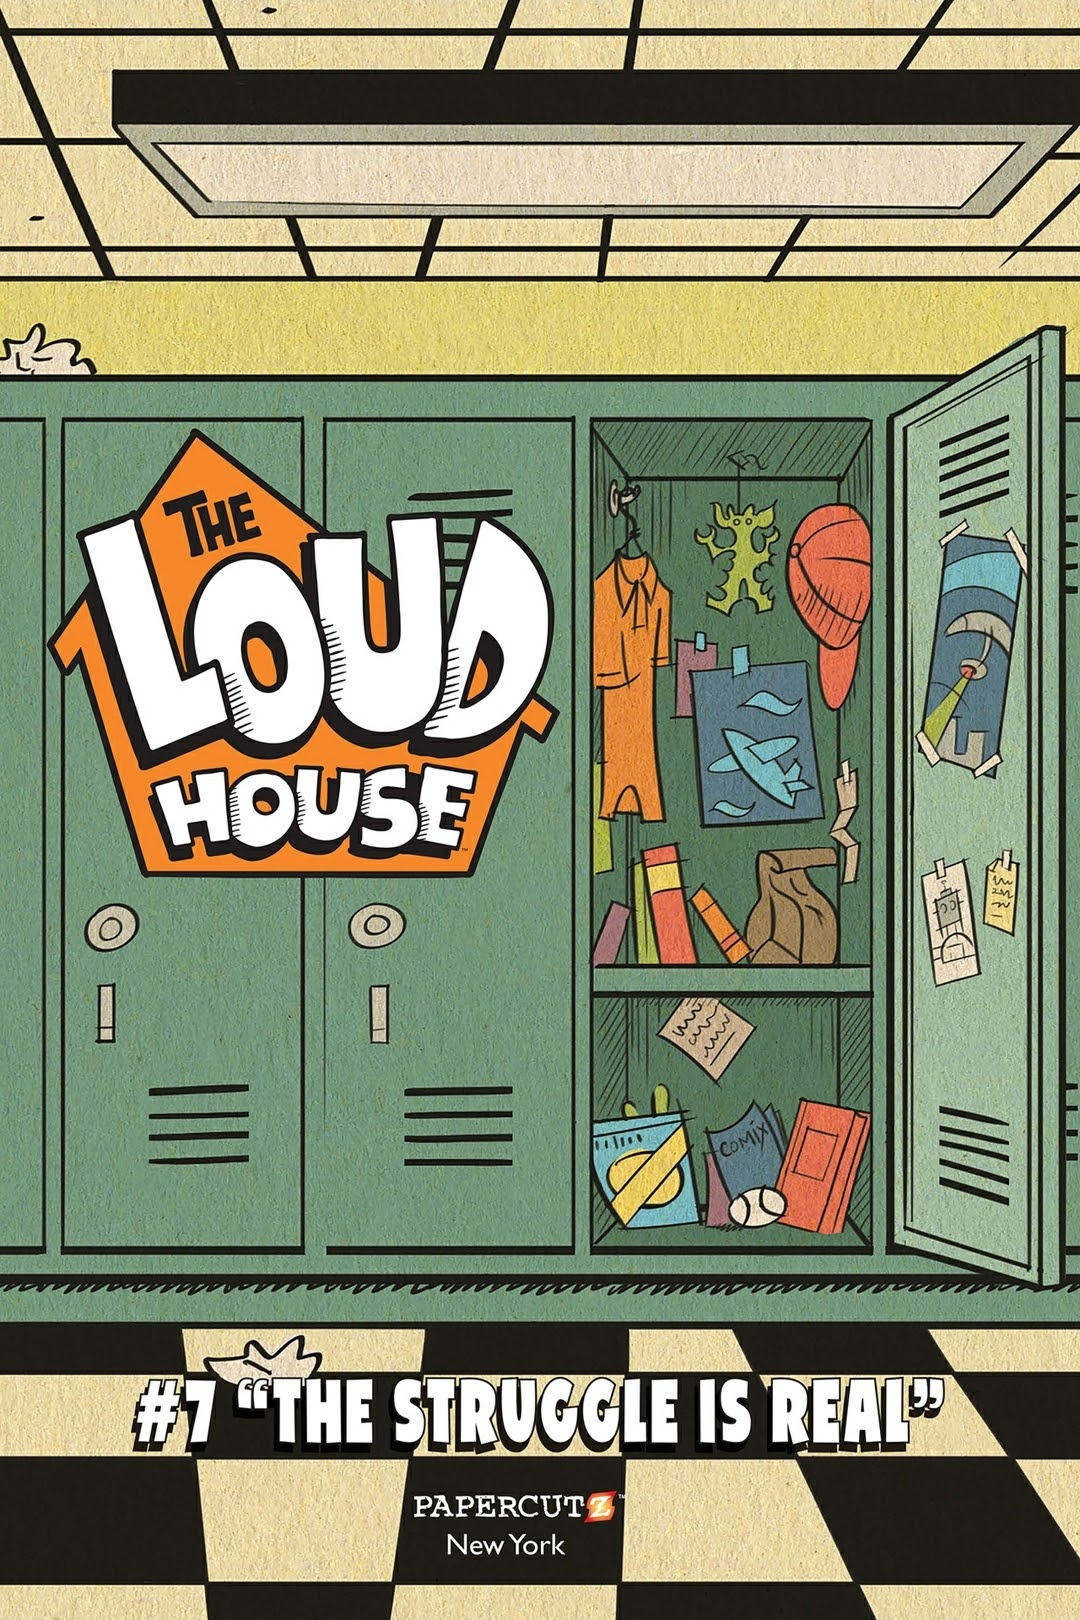 The Loud House 7 Page 1